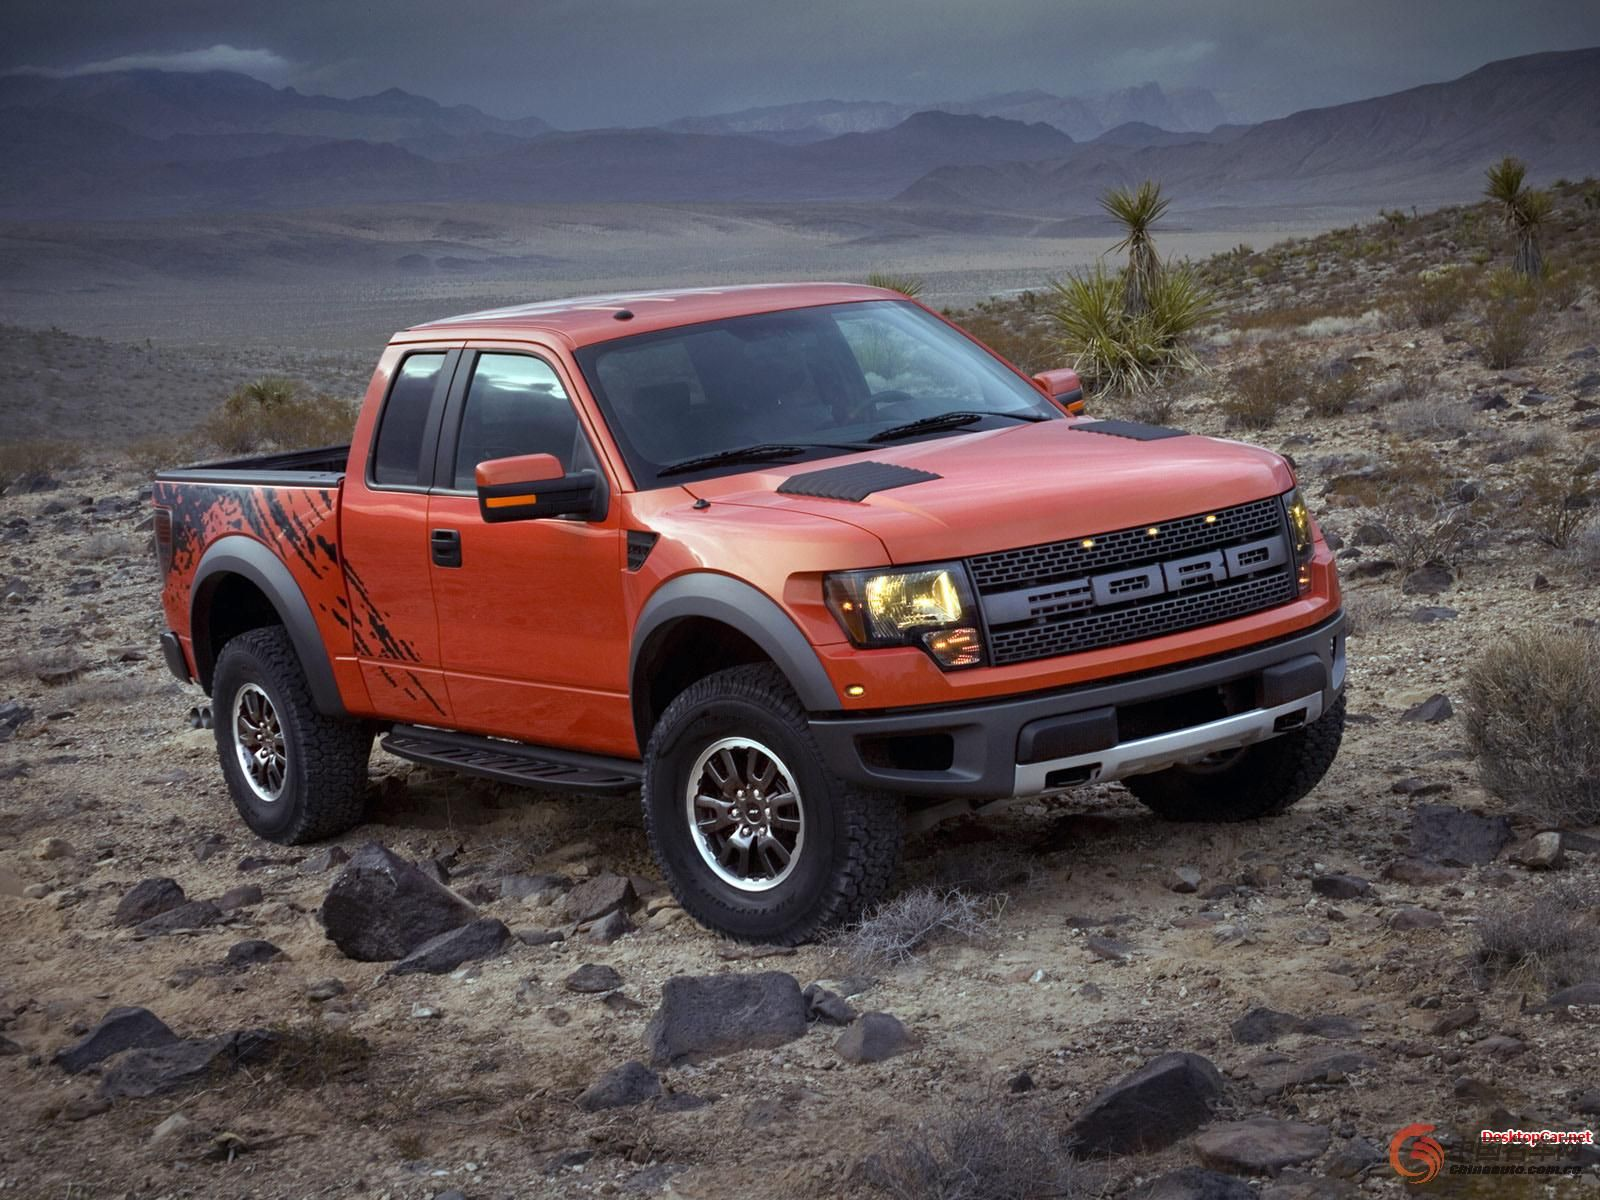 Ford Raptor Wallpaper Cars Trucks Pinterest Ford Ford